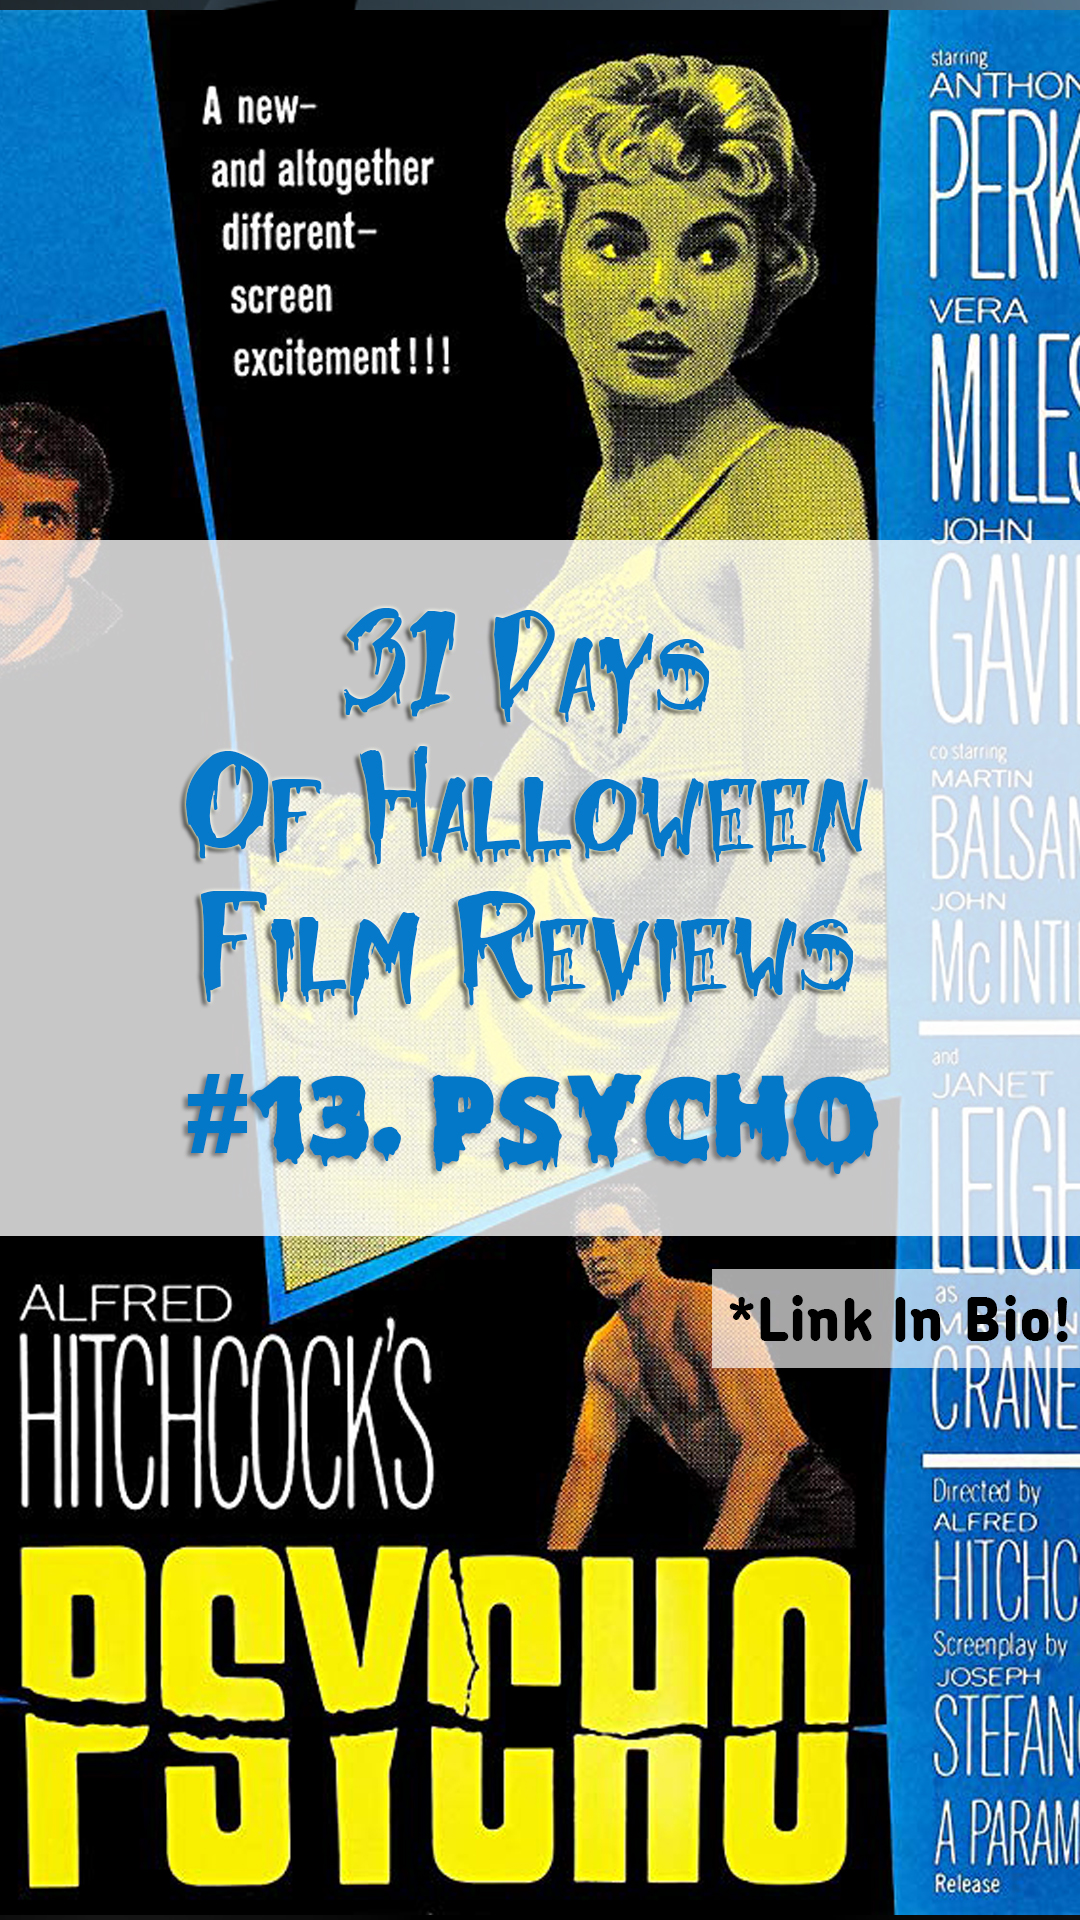 Psycho Film Review